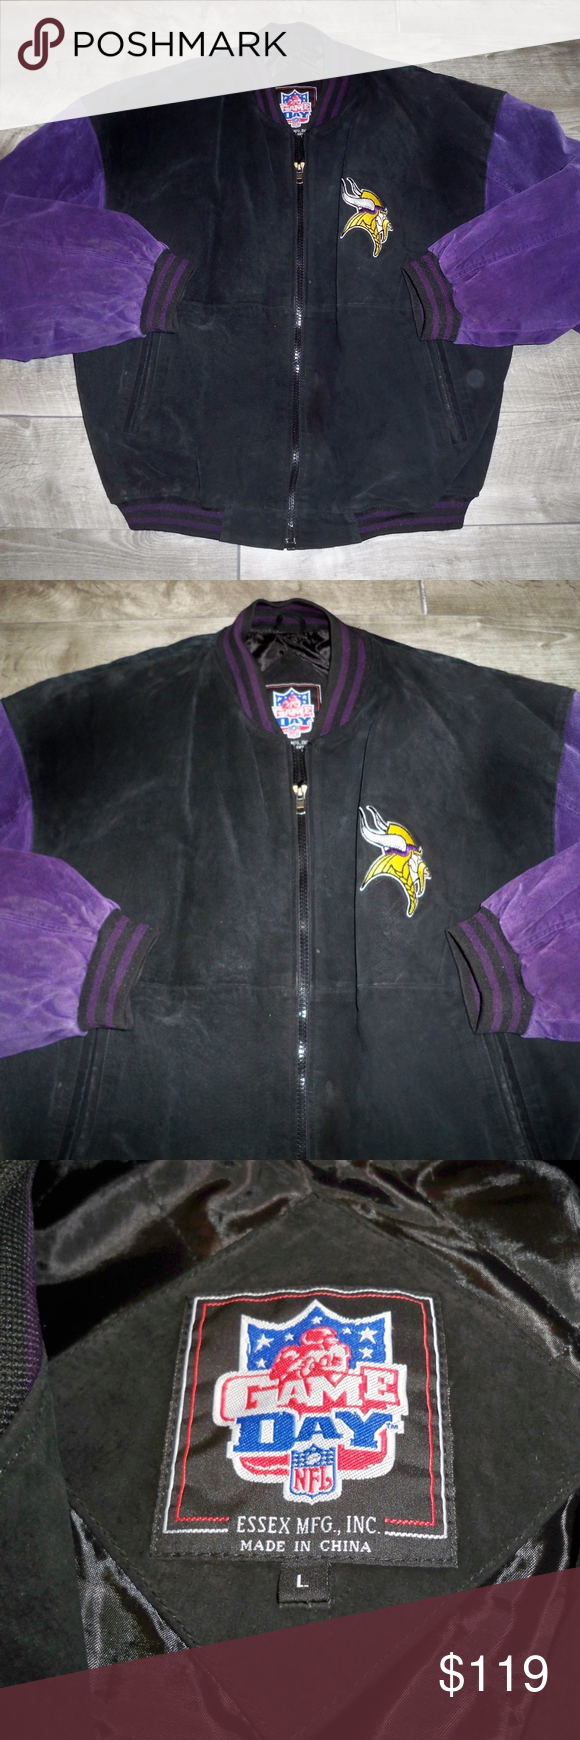 Game Day Men S Leather Minnesota Vikings Jacket Lg Up For Sale Is A Good Condition Game Day Men S Leather Nfl Minnesota Vik Gameday Outfit Leather Men Jackets [ 1740 x 580 Pixel ]